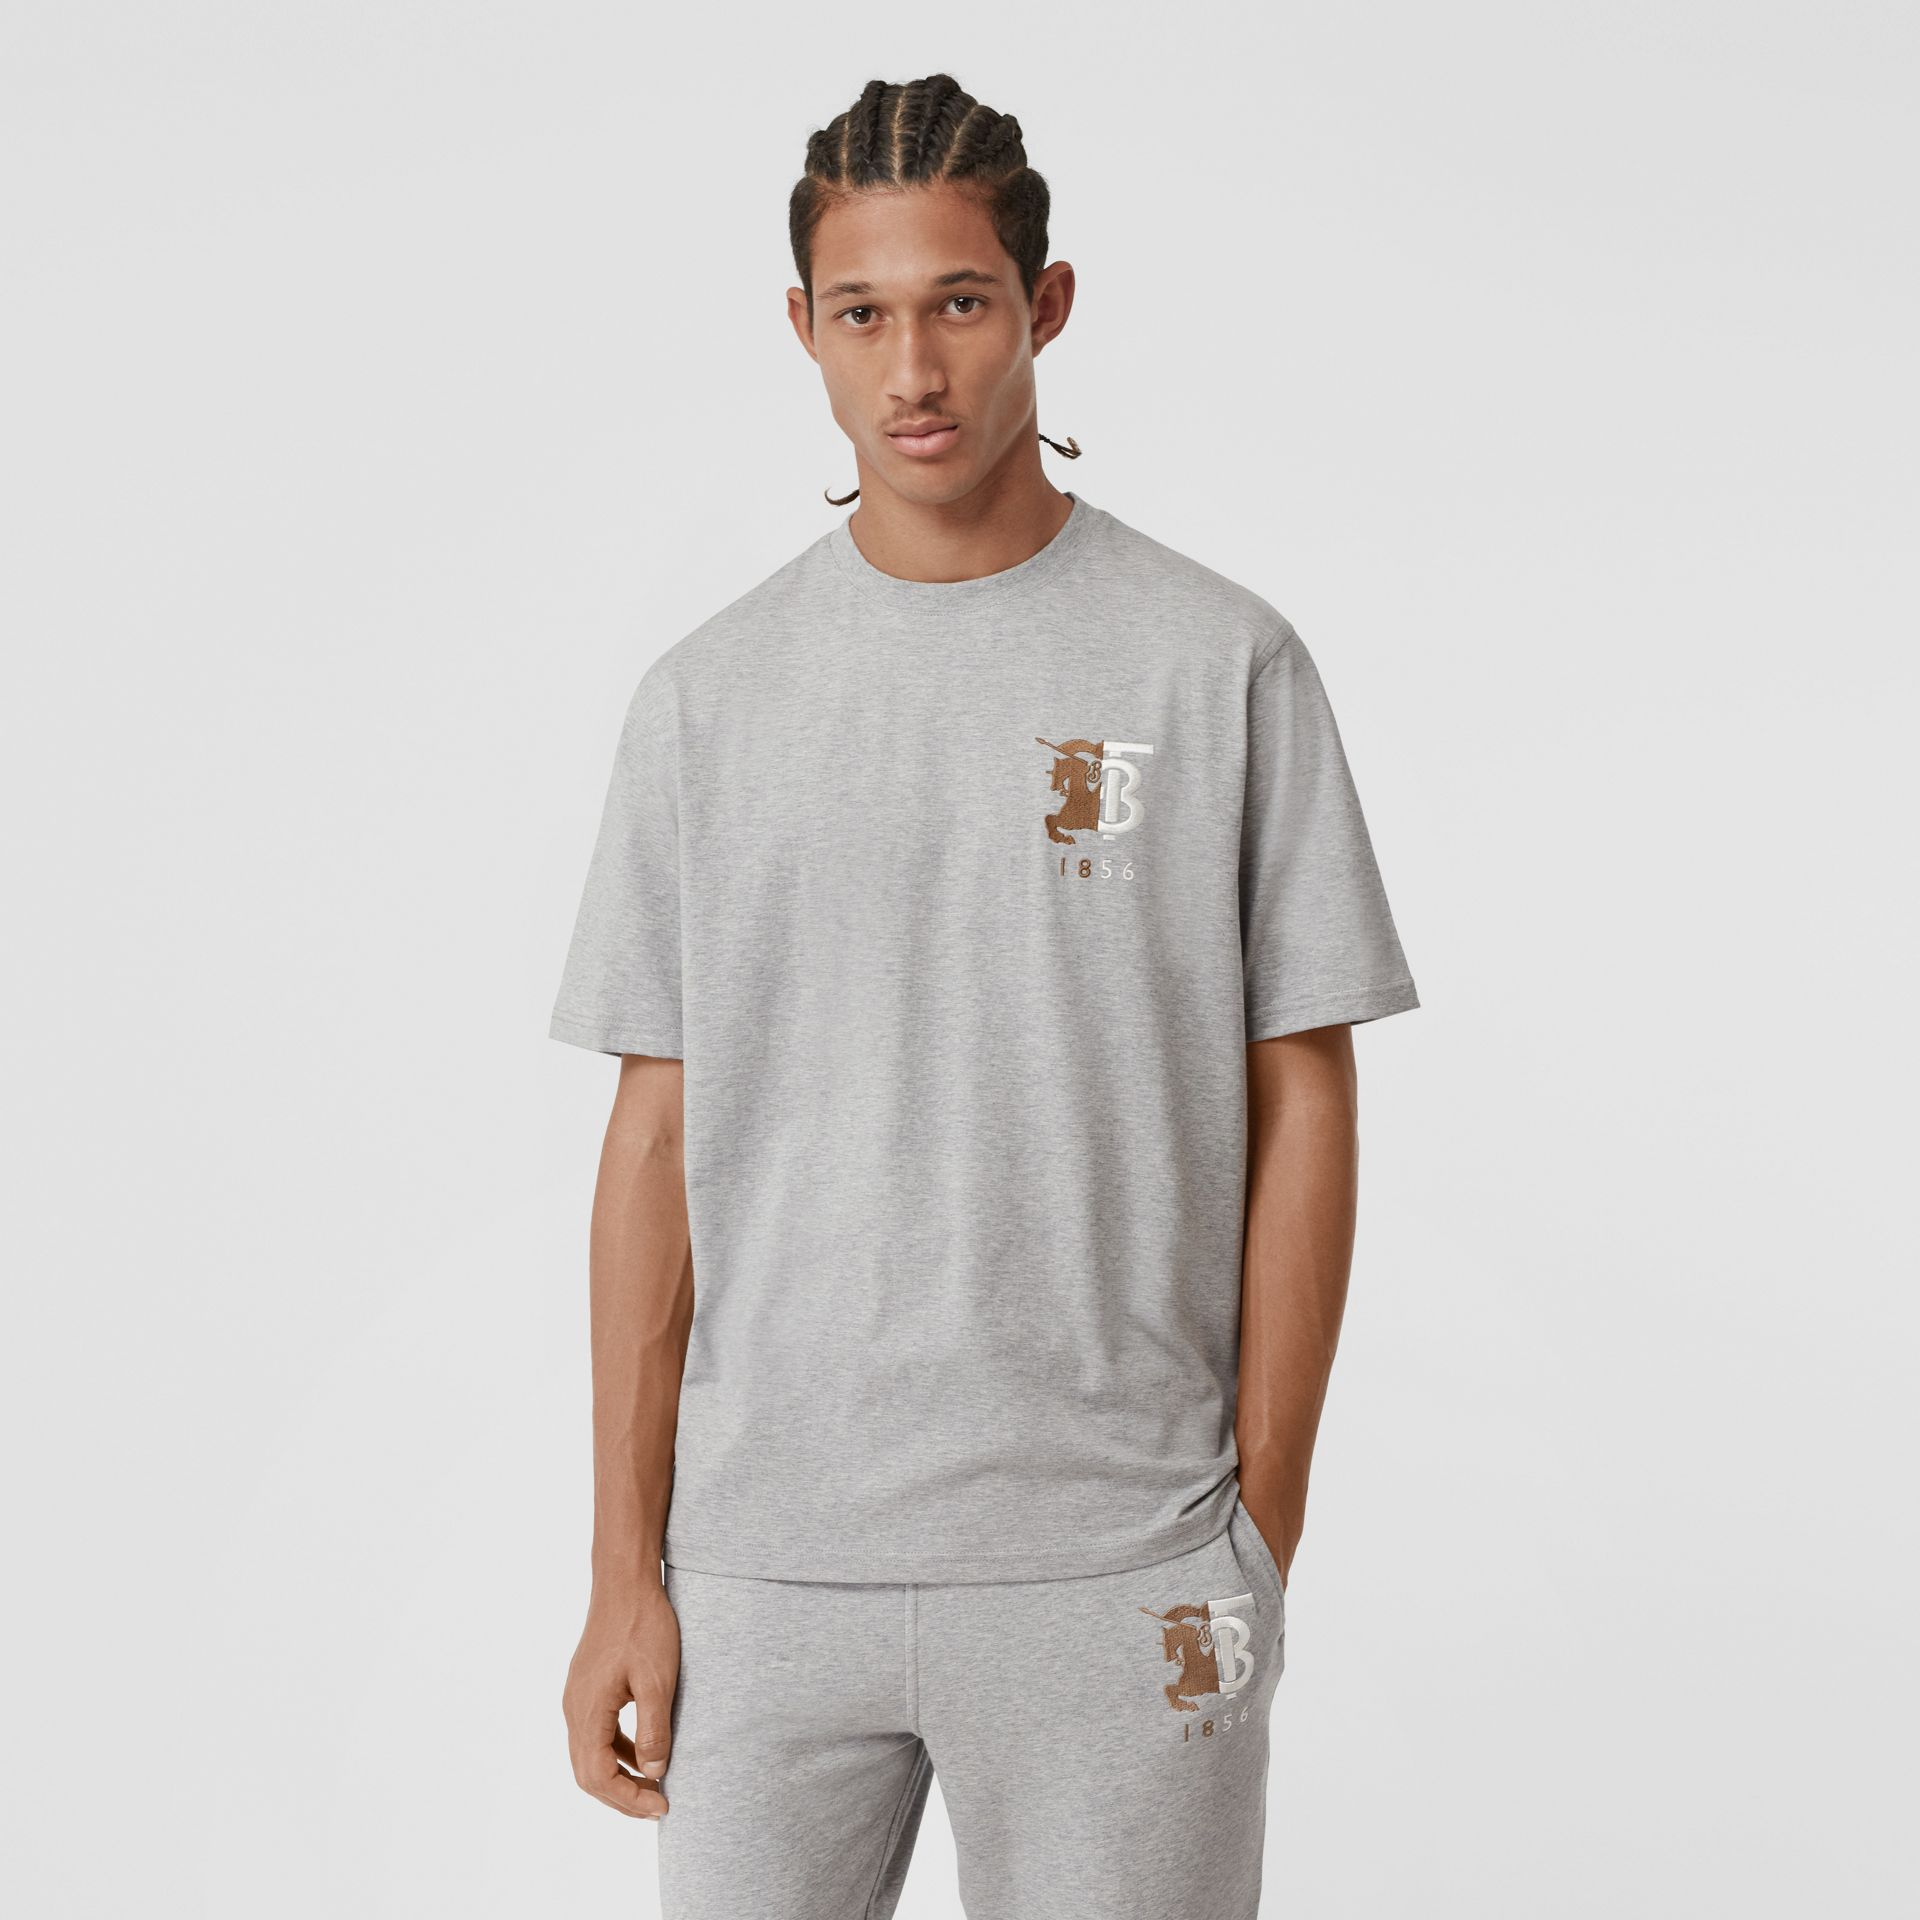 Contrast Logo Graphic Cotton T-shirt in Pale Grey Melange - Men | Burberry - gallery image 5